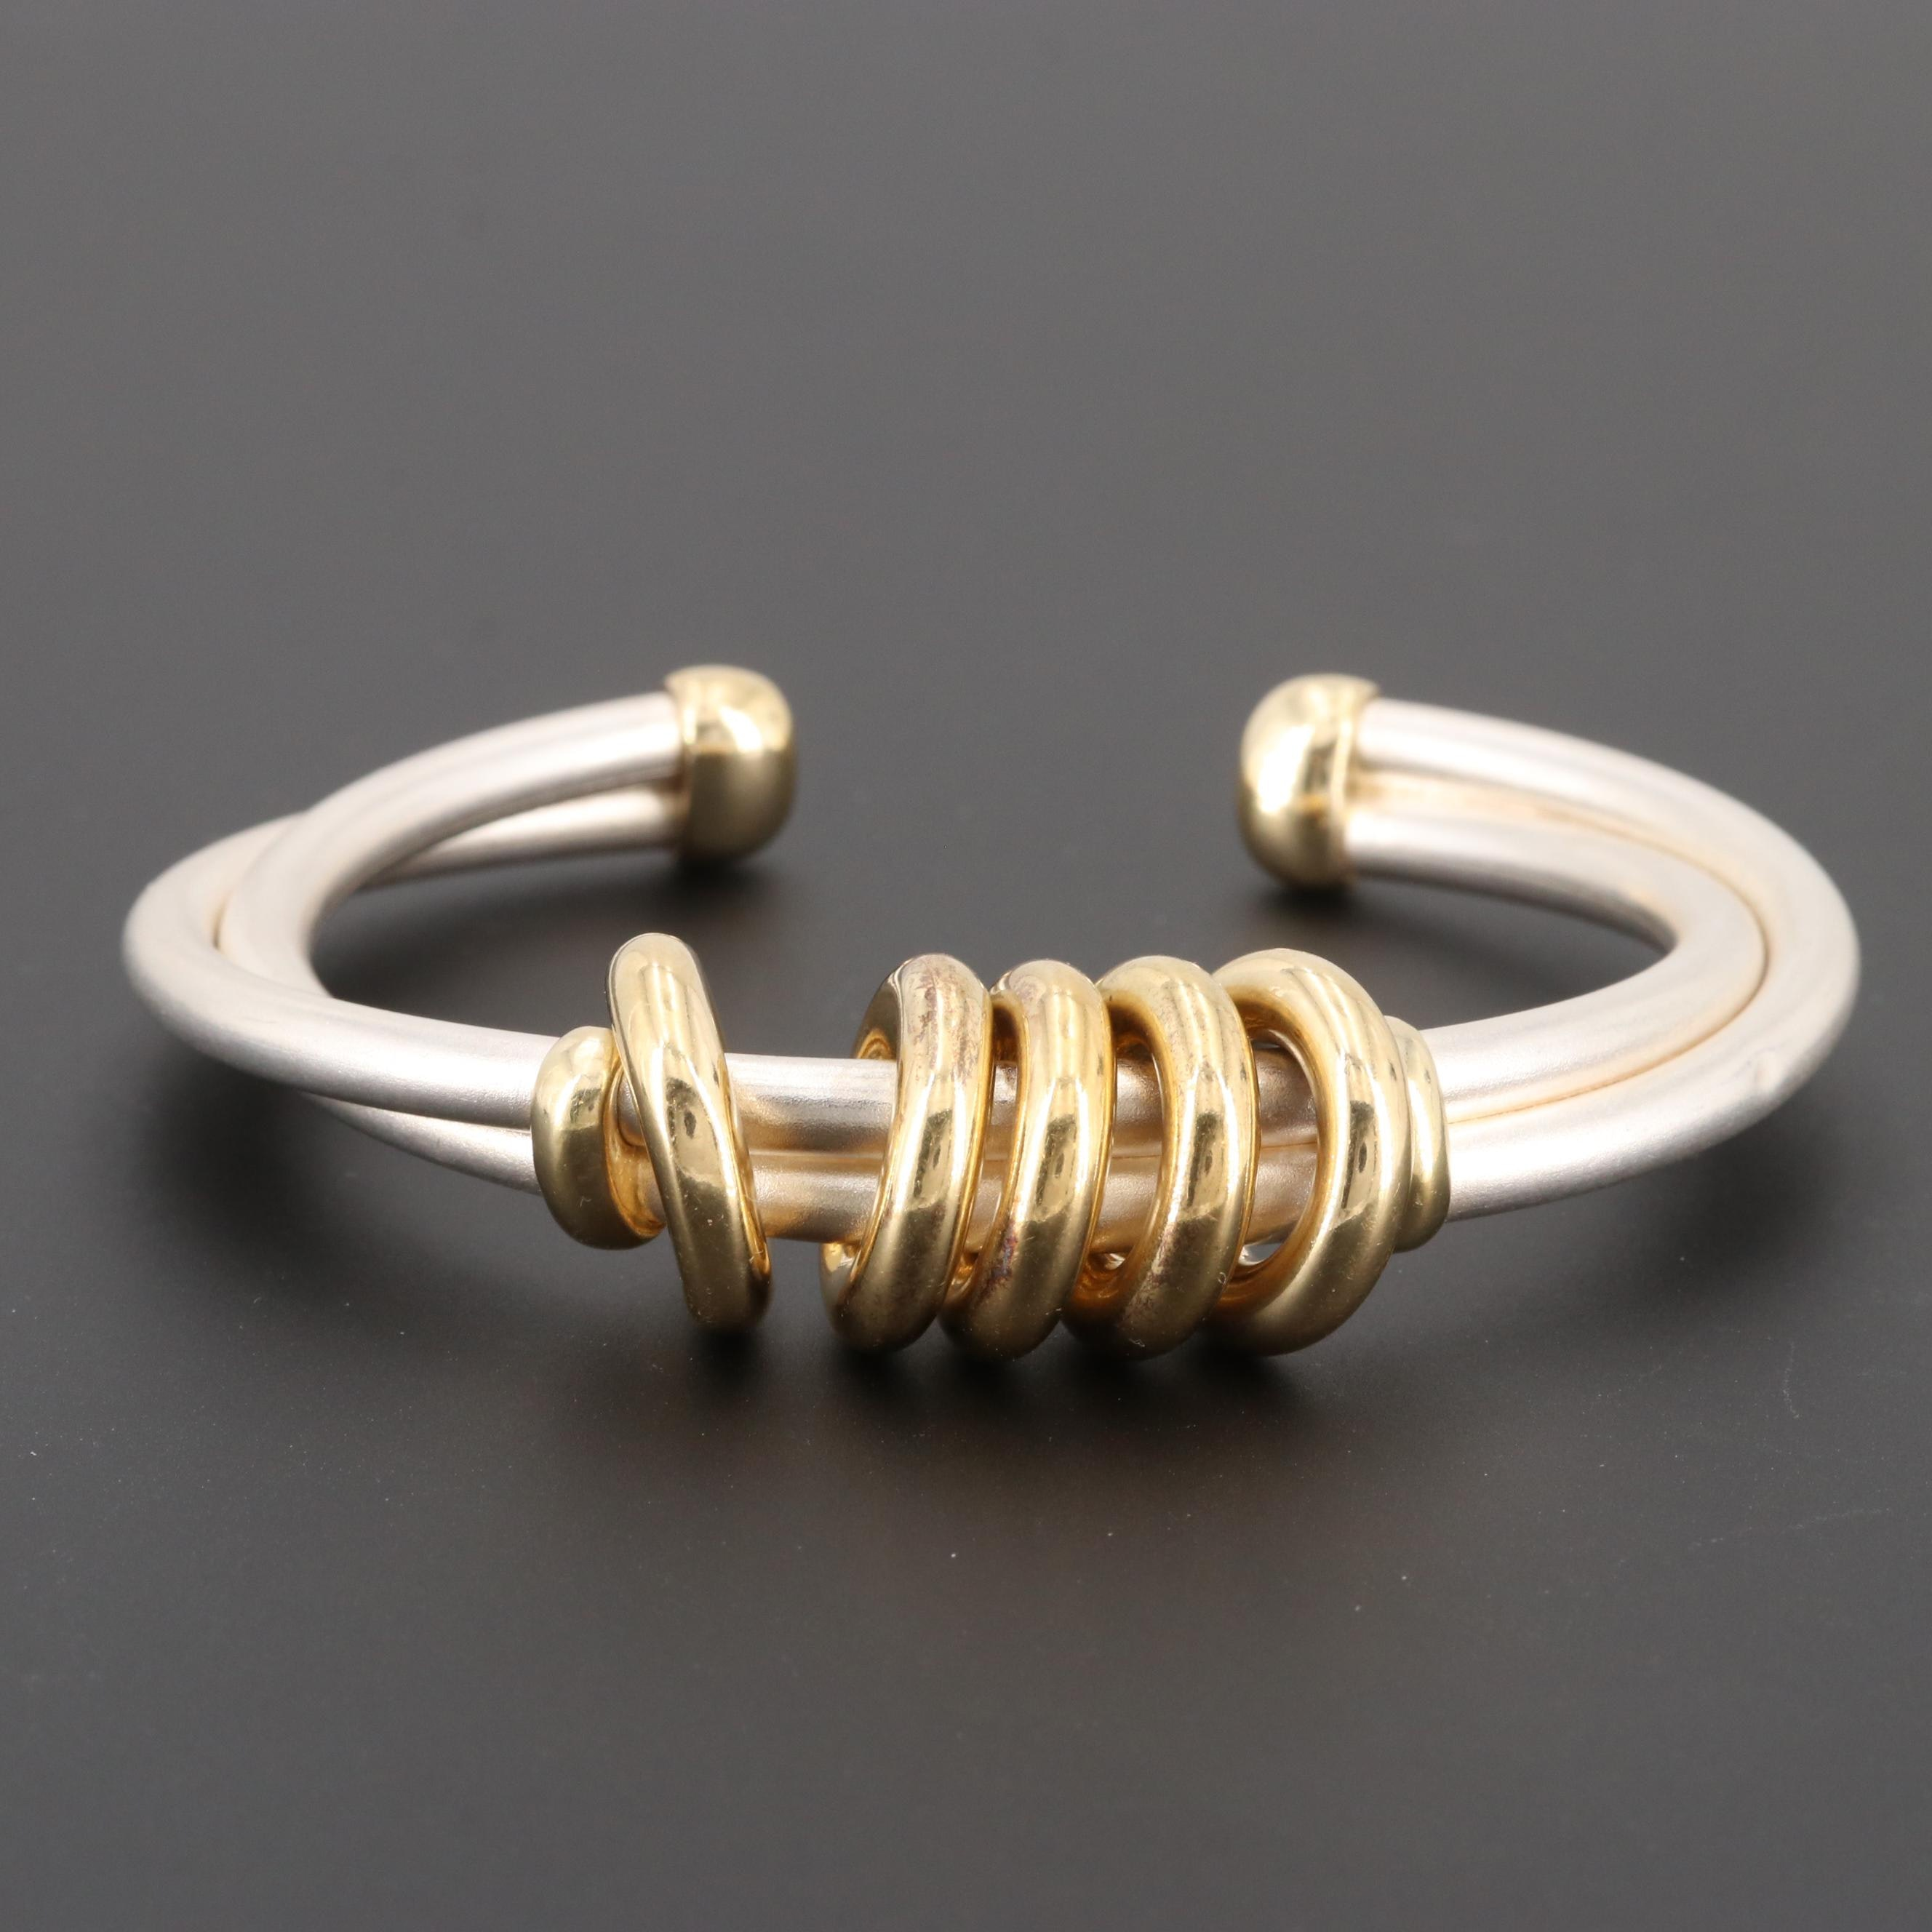 Una Erre Sterling Silver Cuff Bracelet with Gold Wash Accents